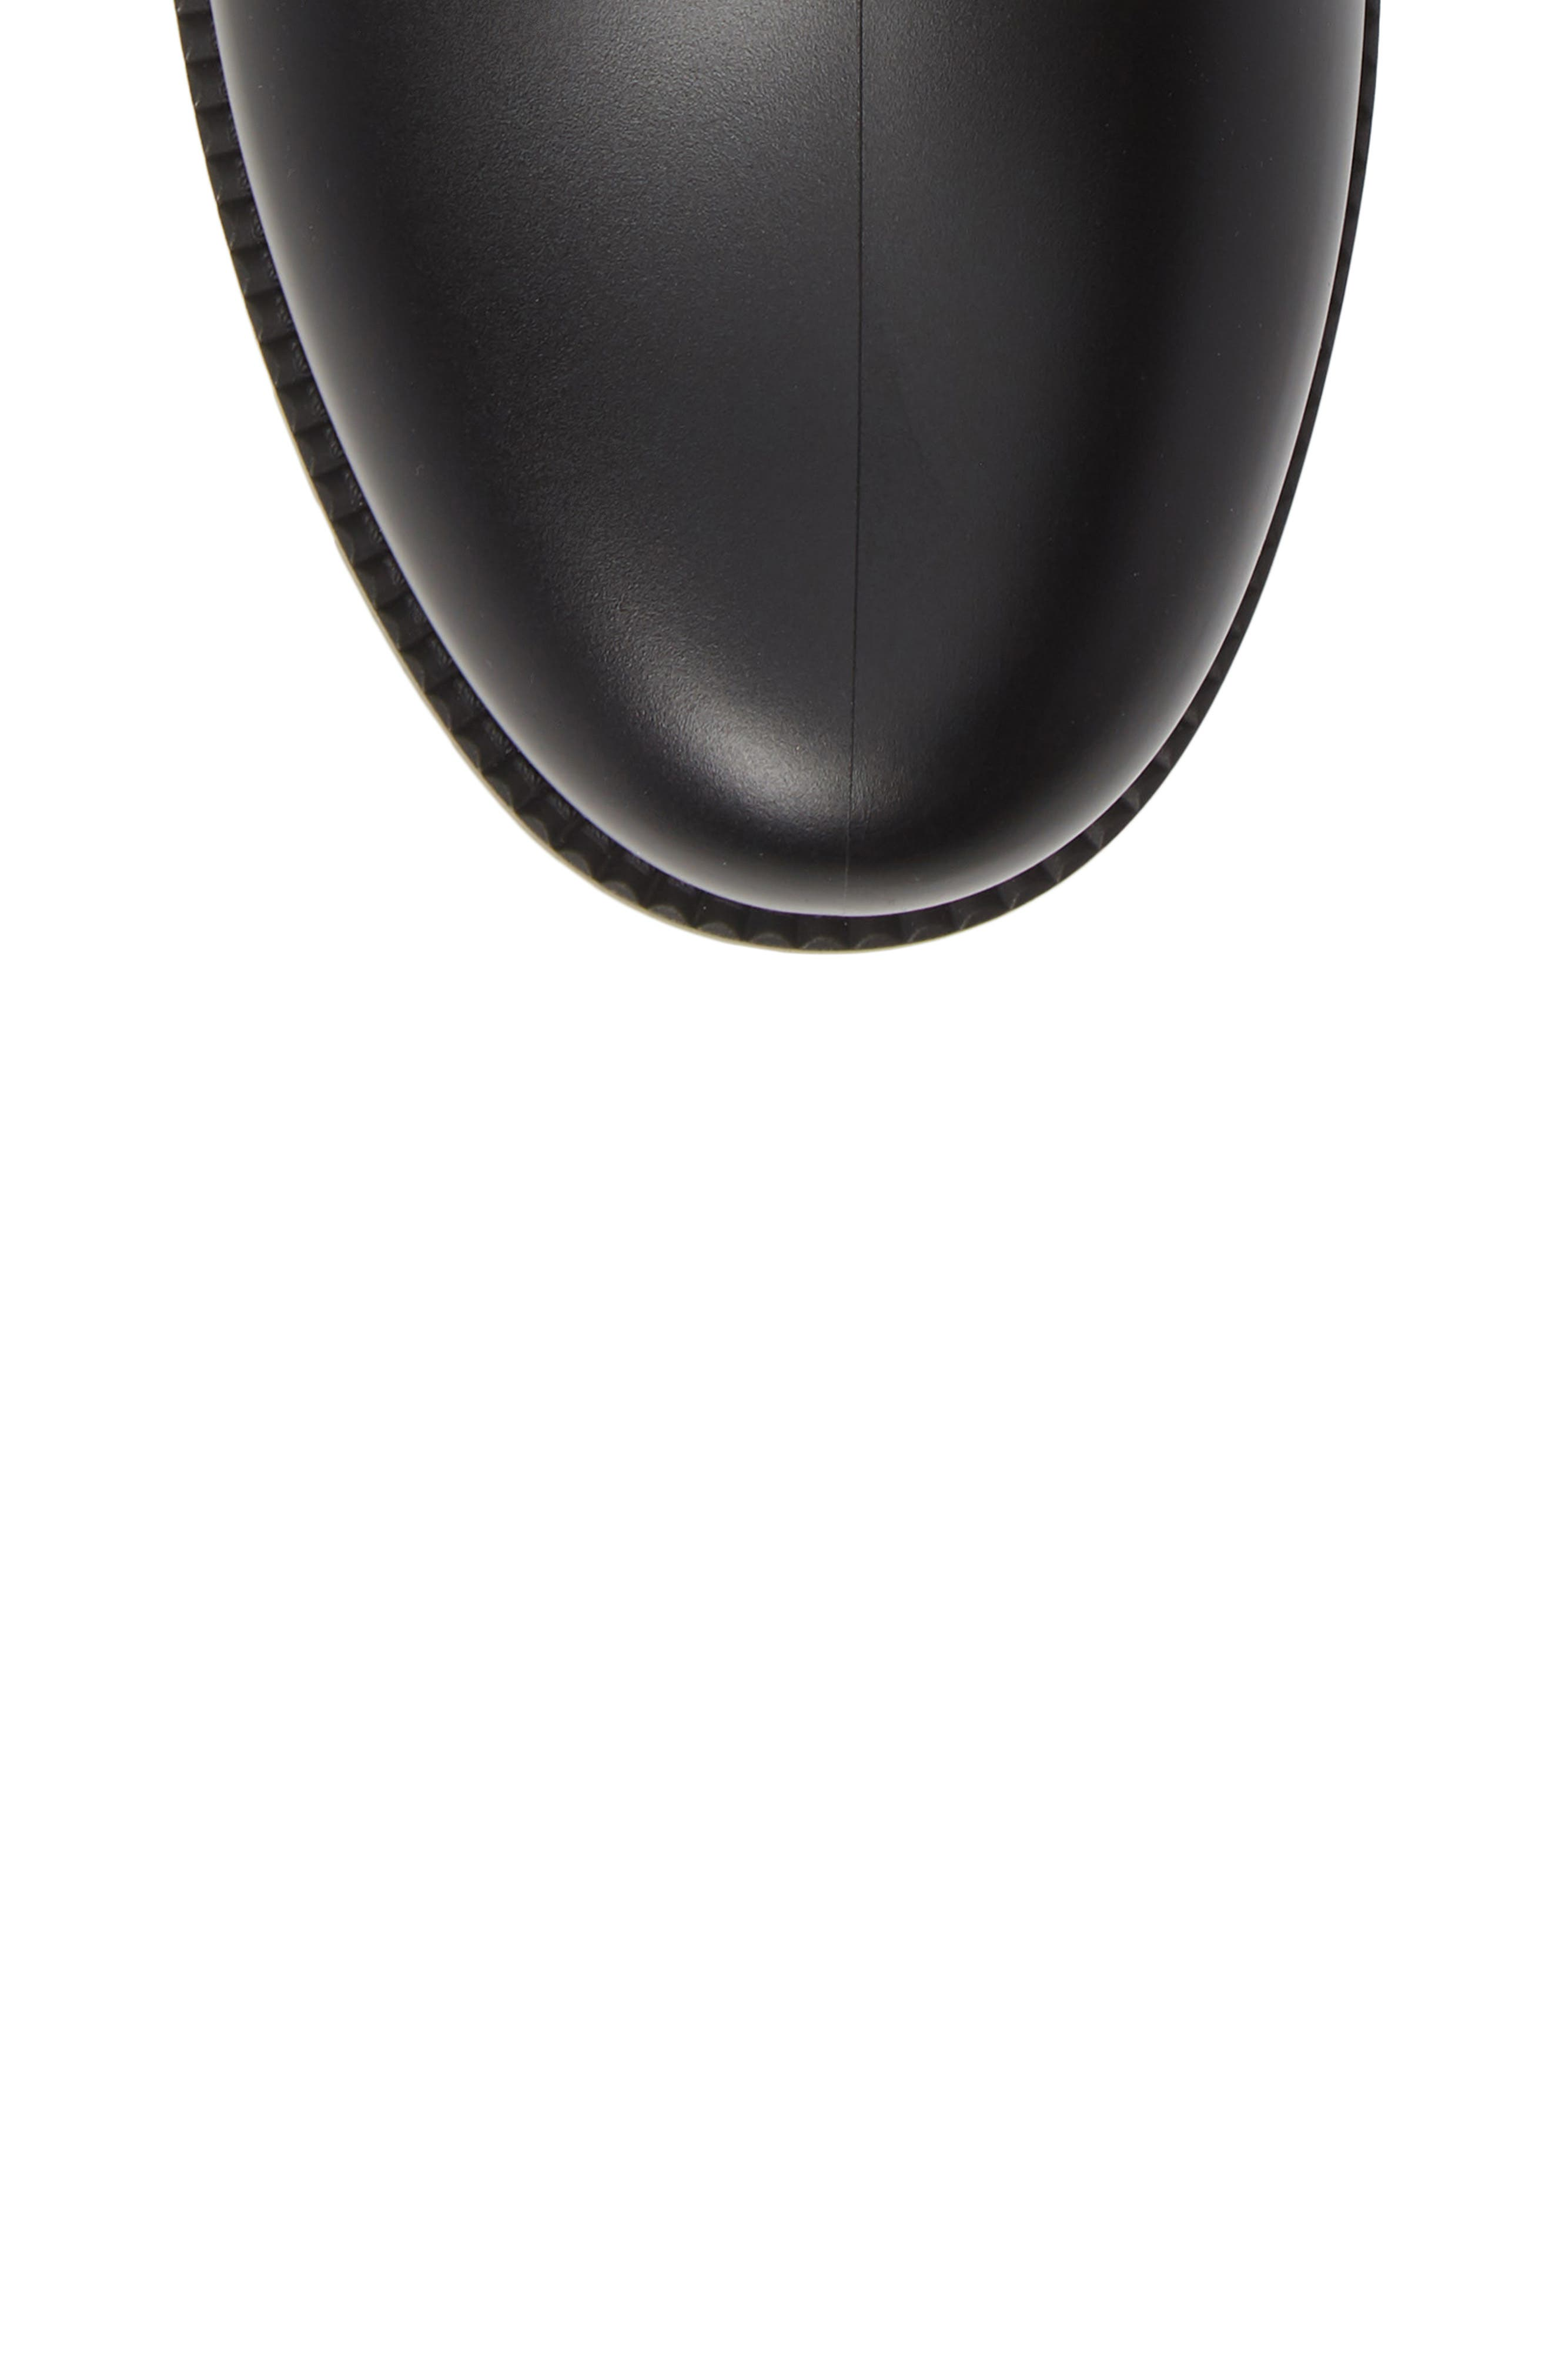 MONCLER, Ginette Stivale Knit Cuff Water Resistant Rain Boot, Alternate thumbnail 5, color, BLACK